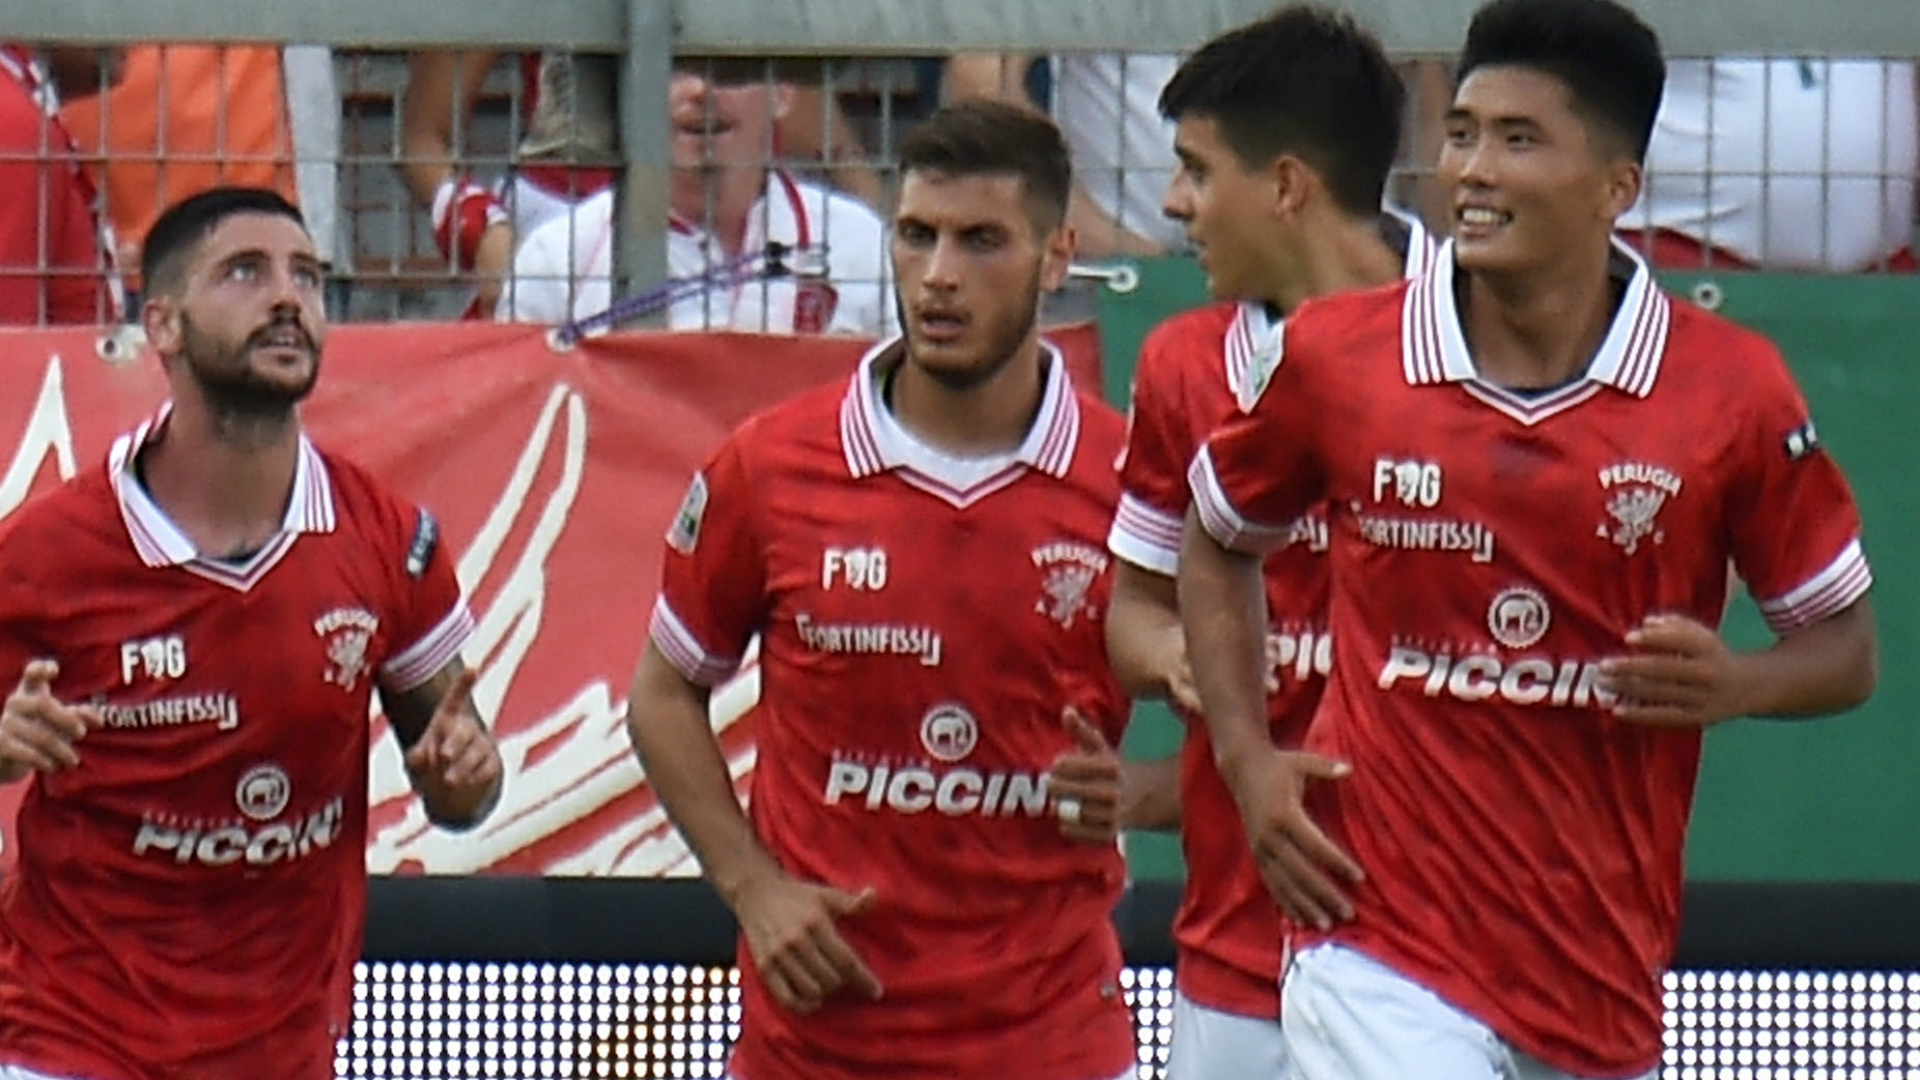 Perugia, Calcio News: